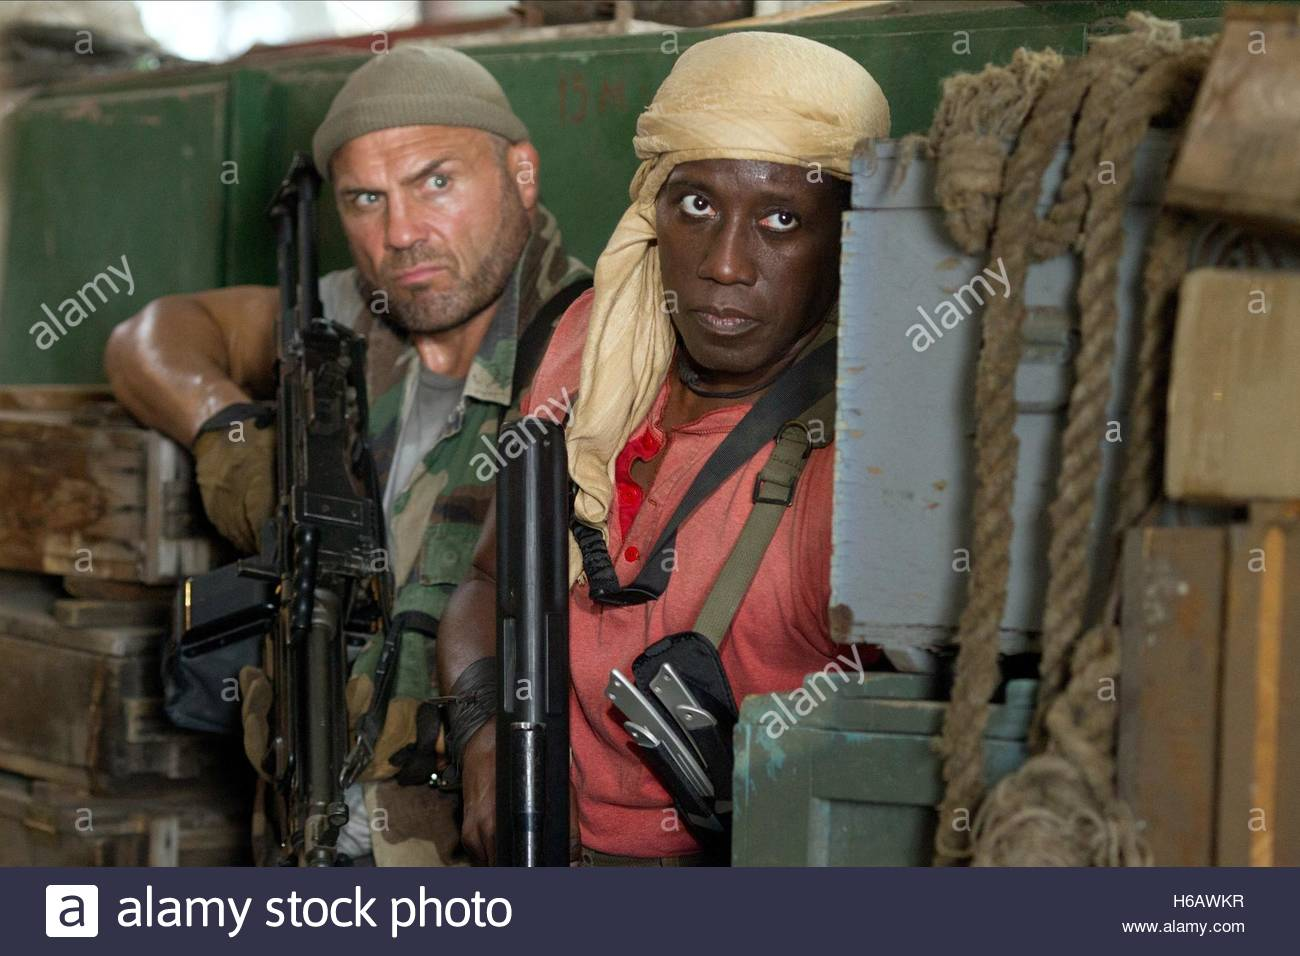 RANDY COUTURE & WESLEY SNIPES THE EXPENDABLES 3 (2014) - Stock Image